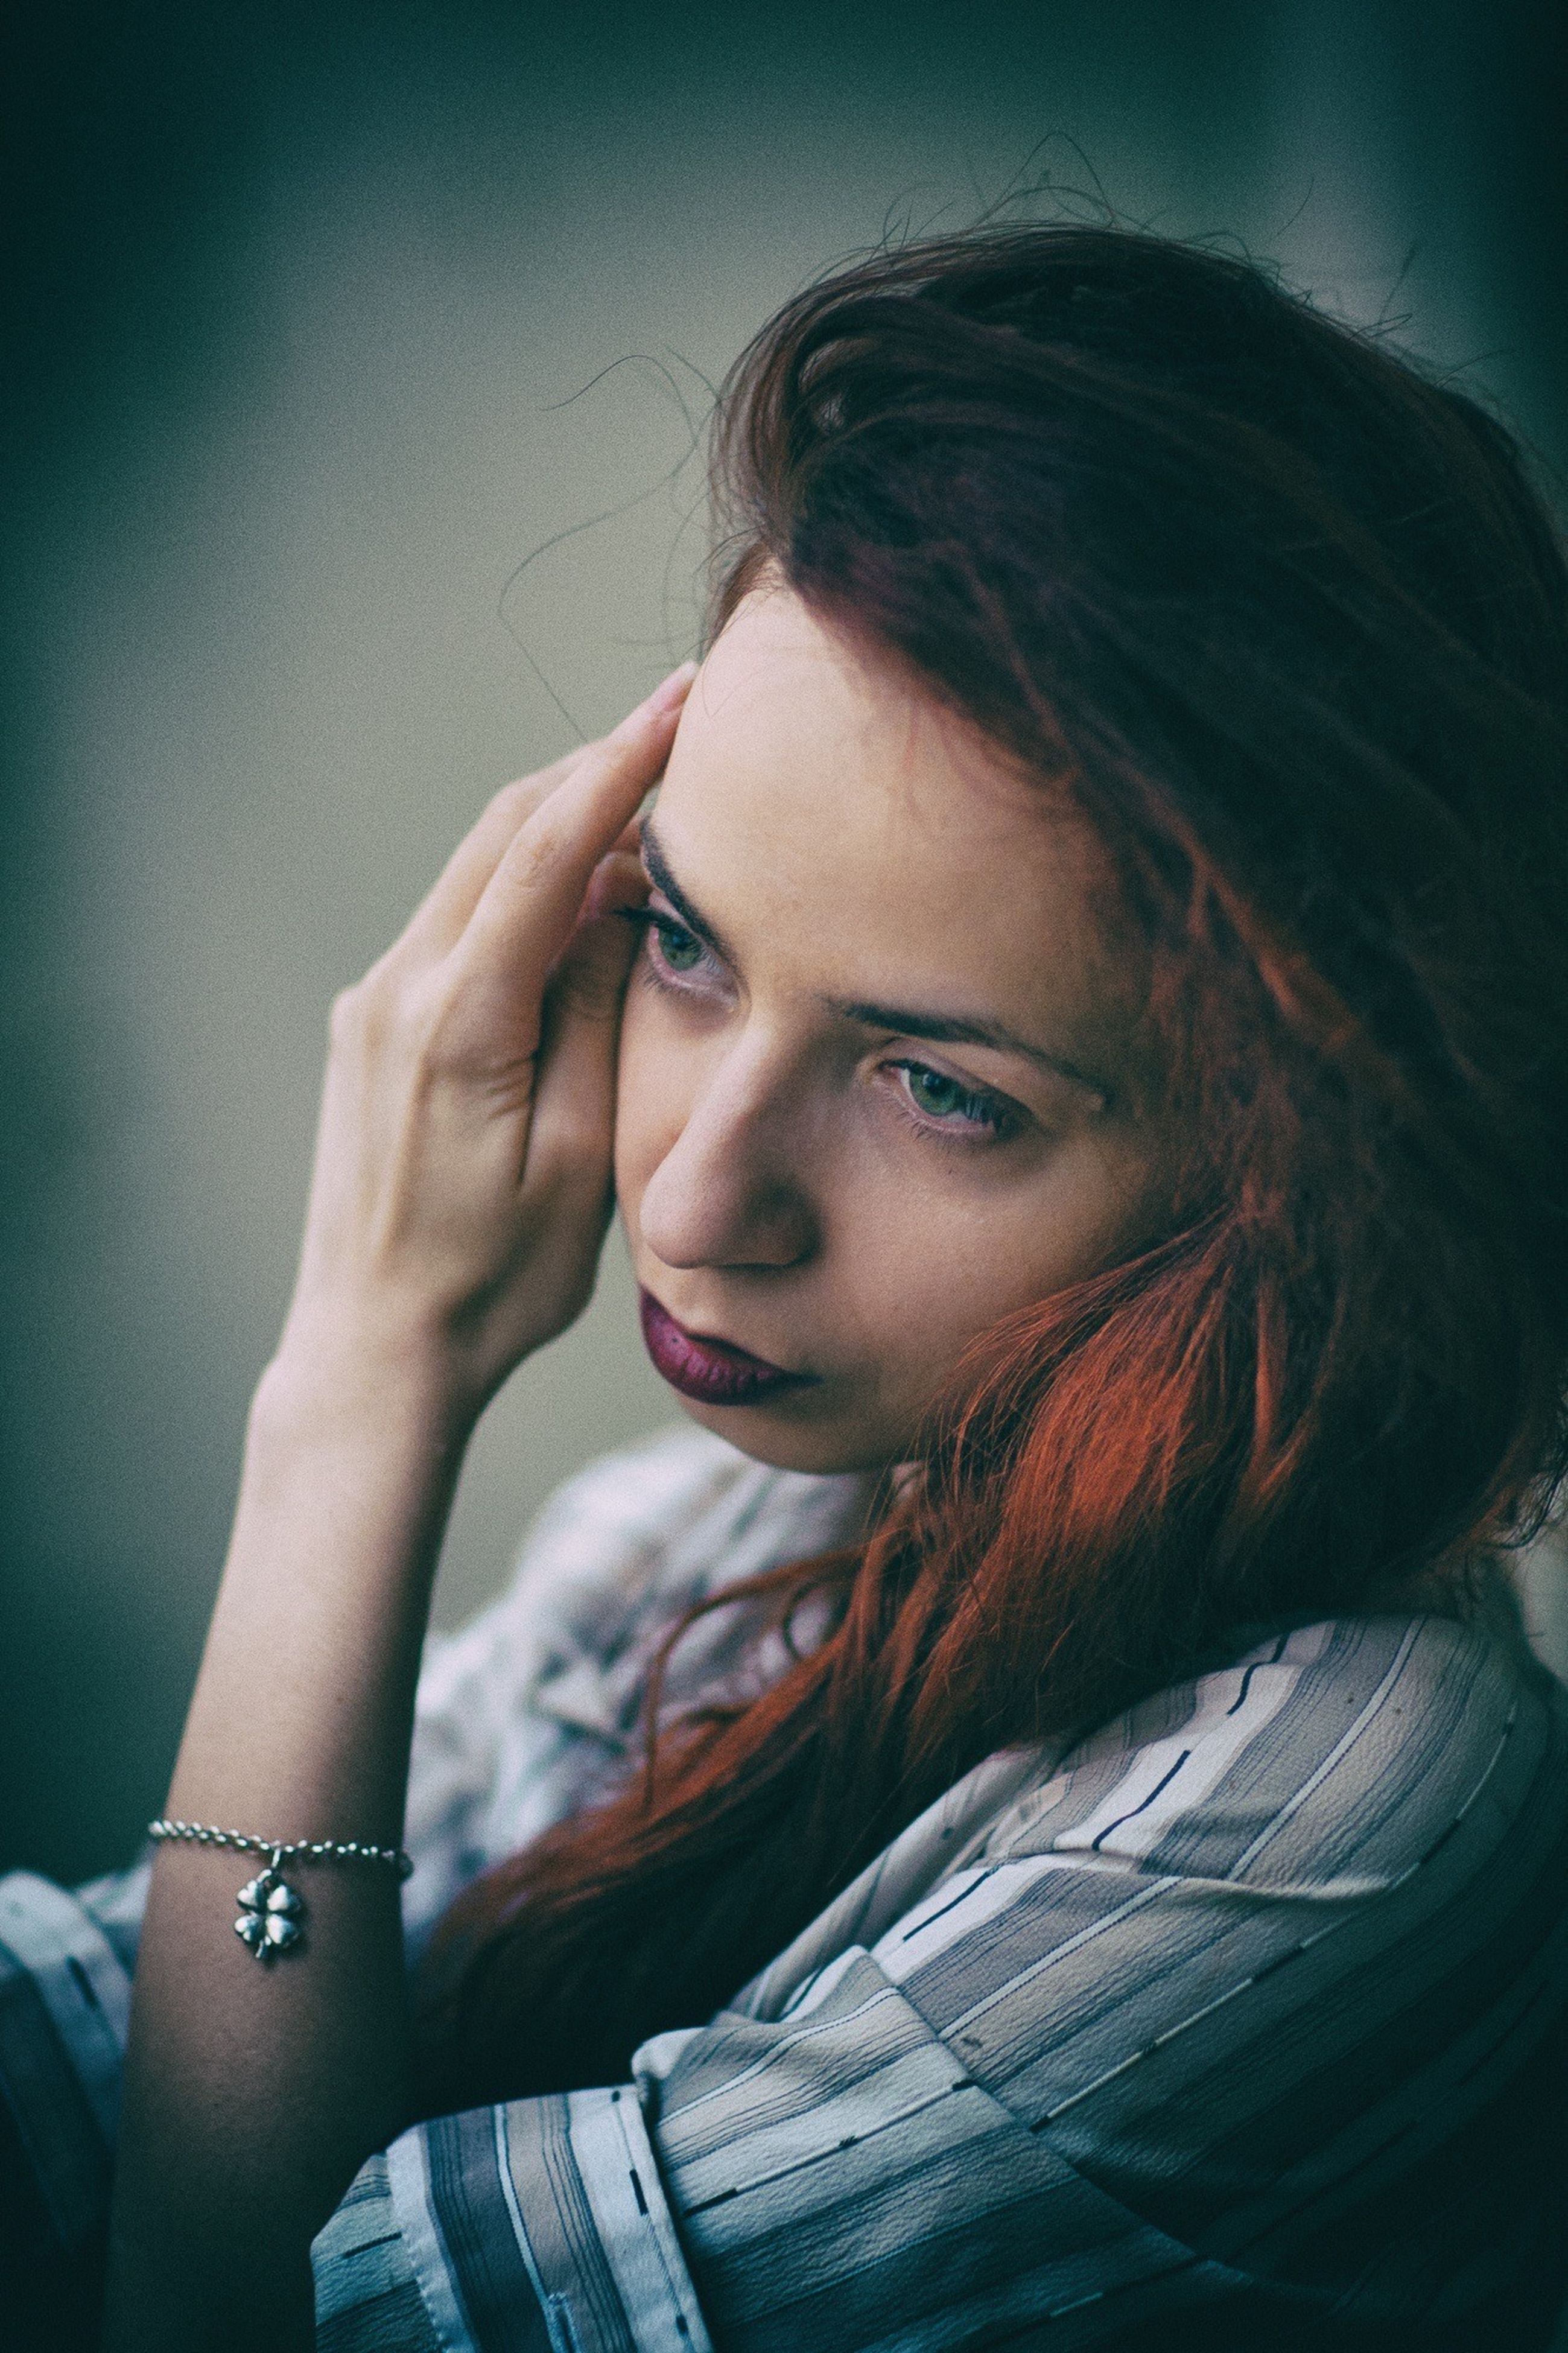 young adult, headshot, lifestyles, indoors, young women, portrait, person, looking at camera, front view, leisure activity, contemplation, close-up, serious, head and shoulders, casual clothing, human face